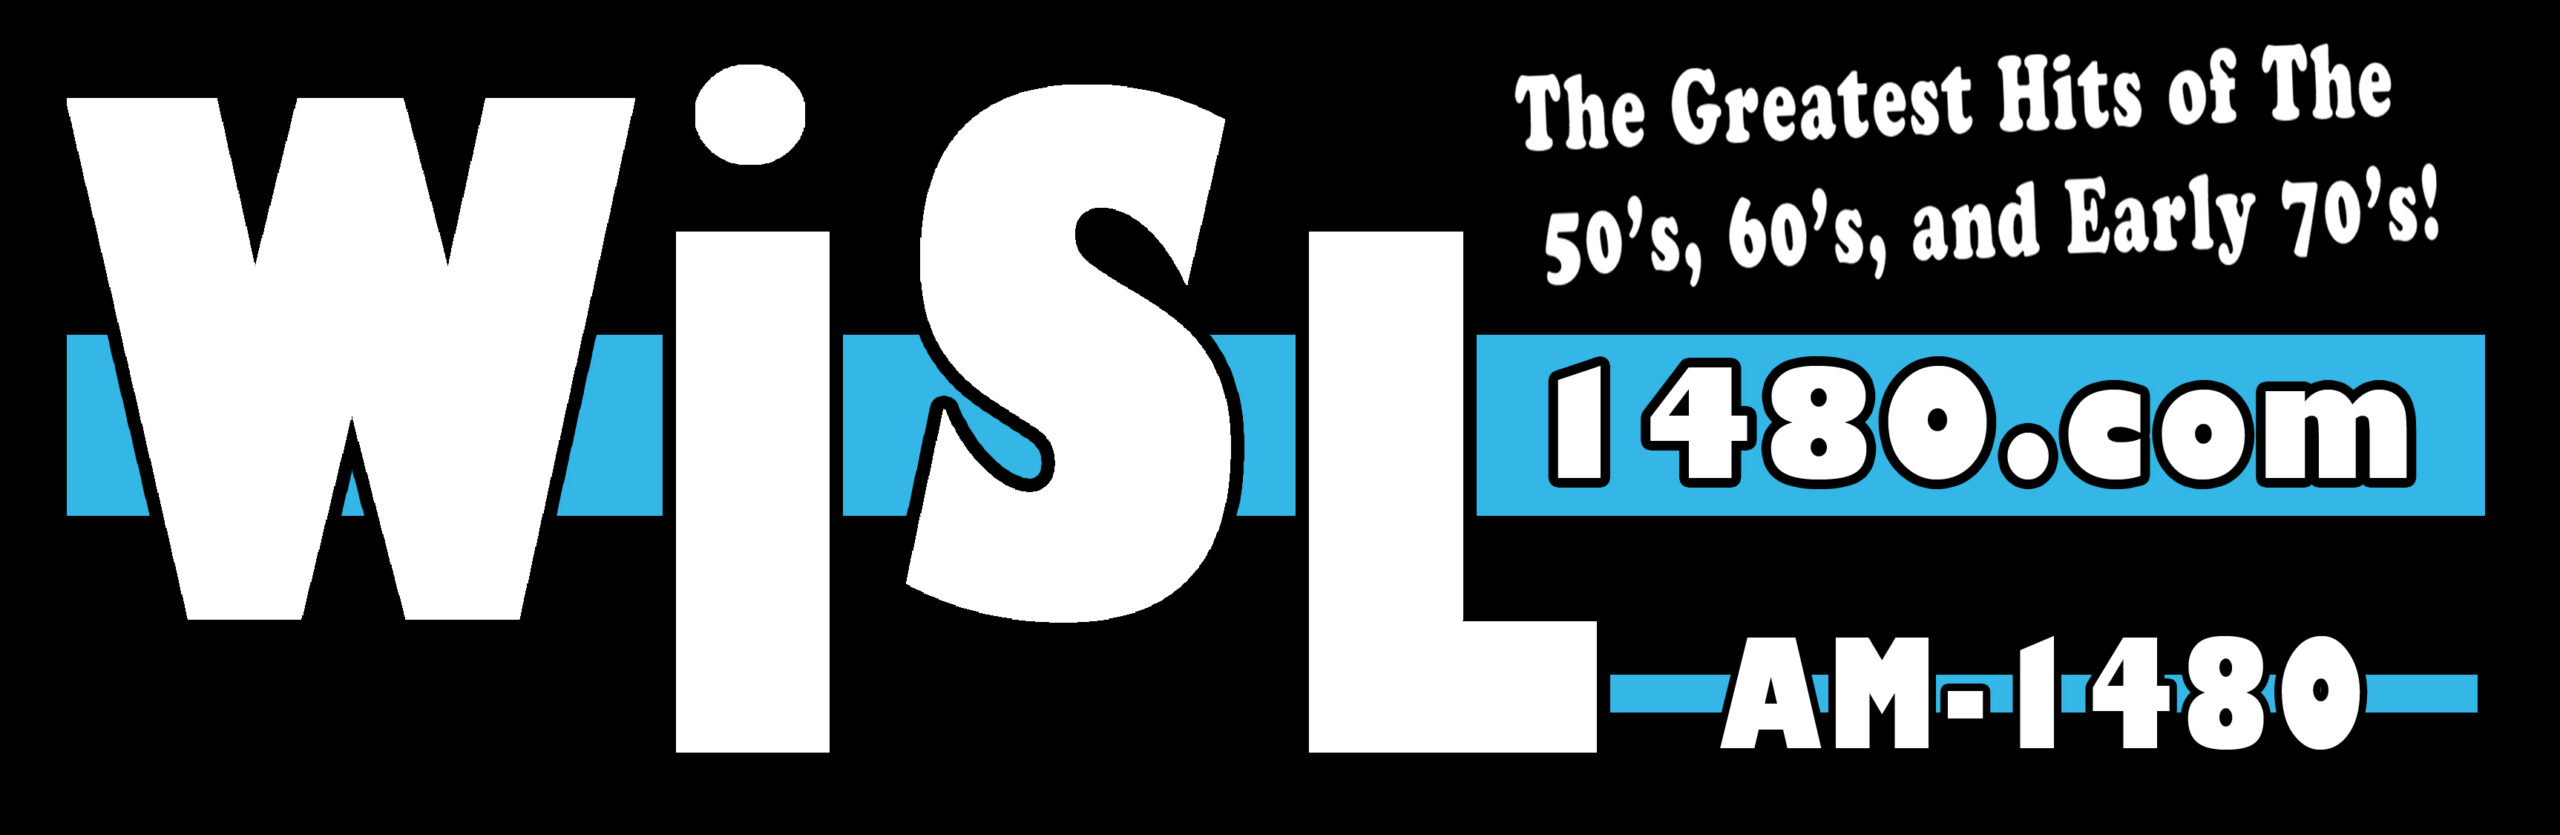 WISL-AM 1480  The Greatest Hits of the 50s, 60s and early 70s!